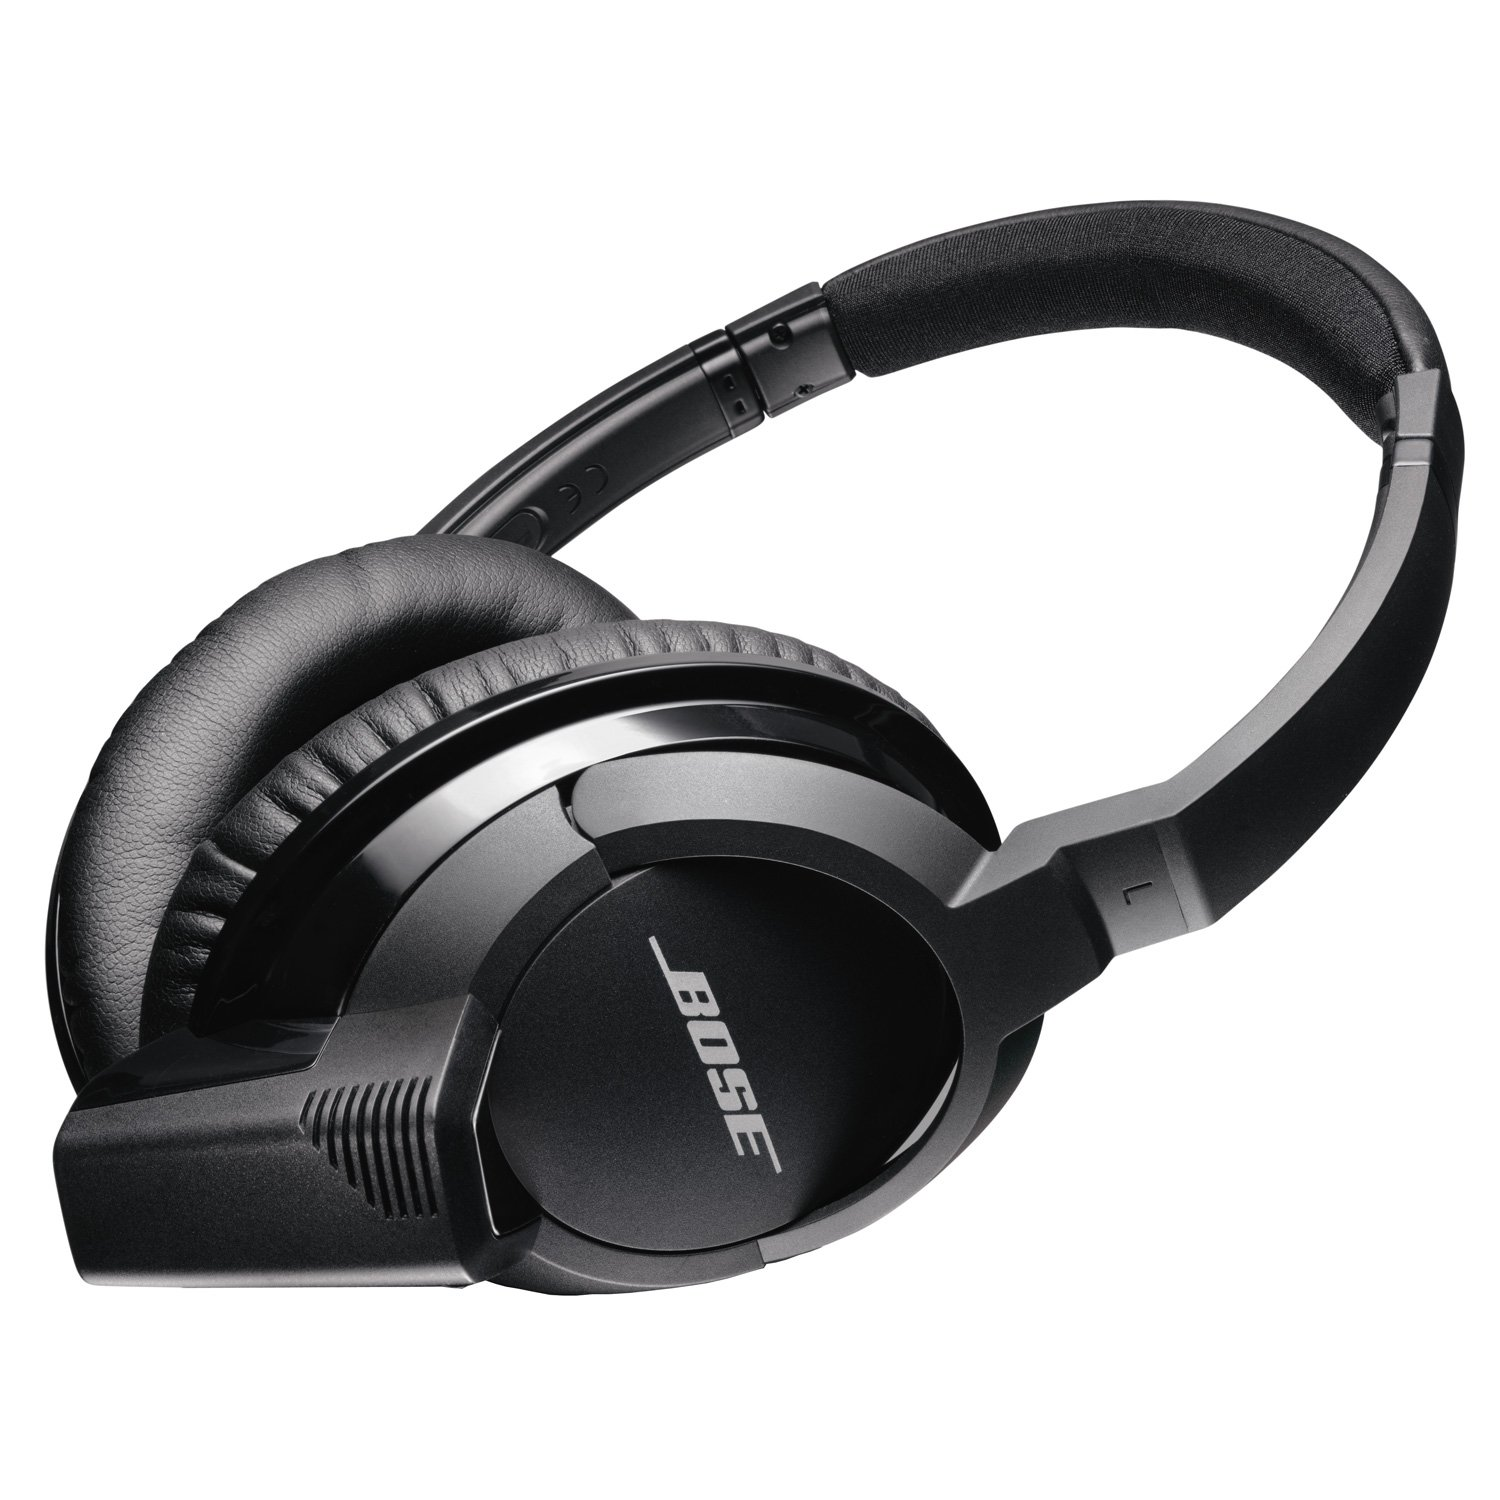 Phone Best Headphones For Android Phones 2013 amazon com bose soundlink around ear bluetooth headphones black discontinued by manufacturer home audio theater